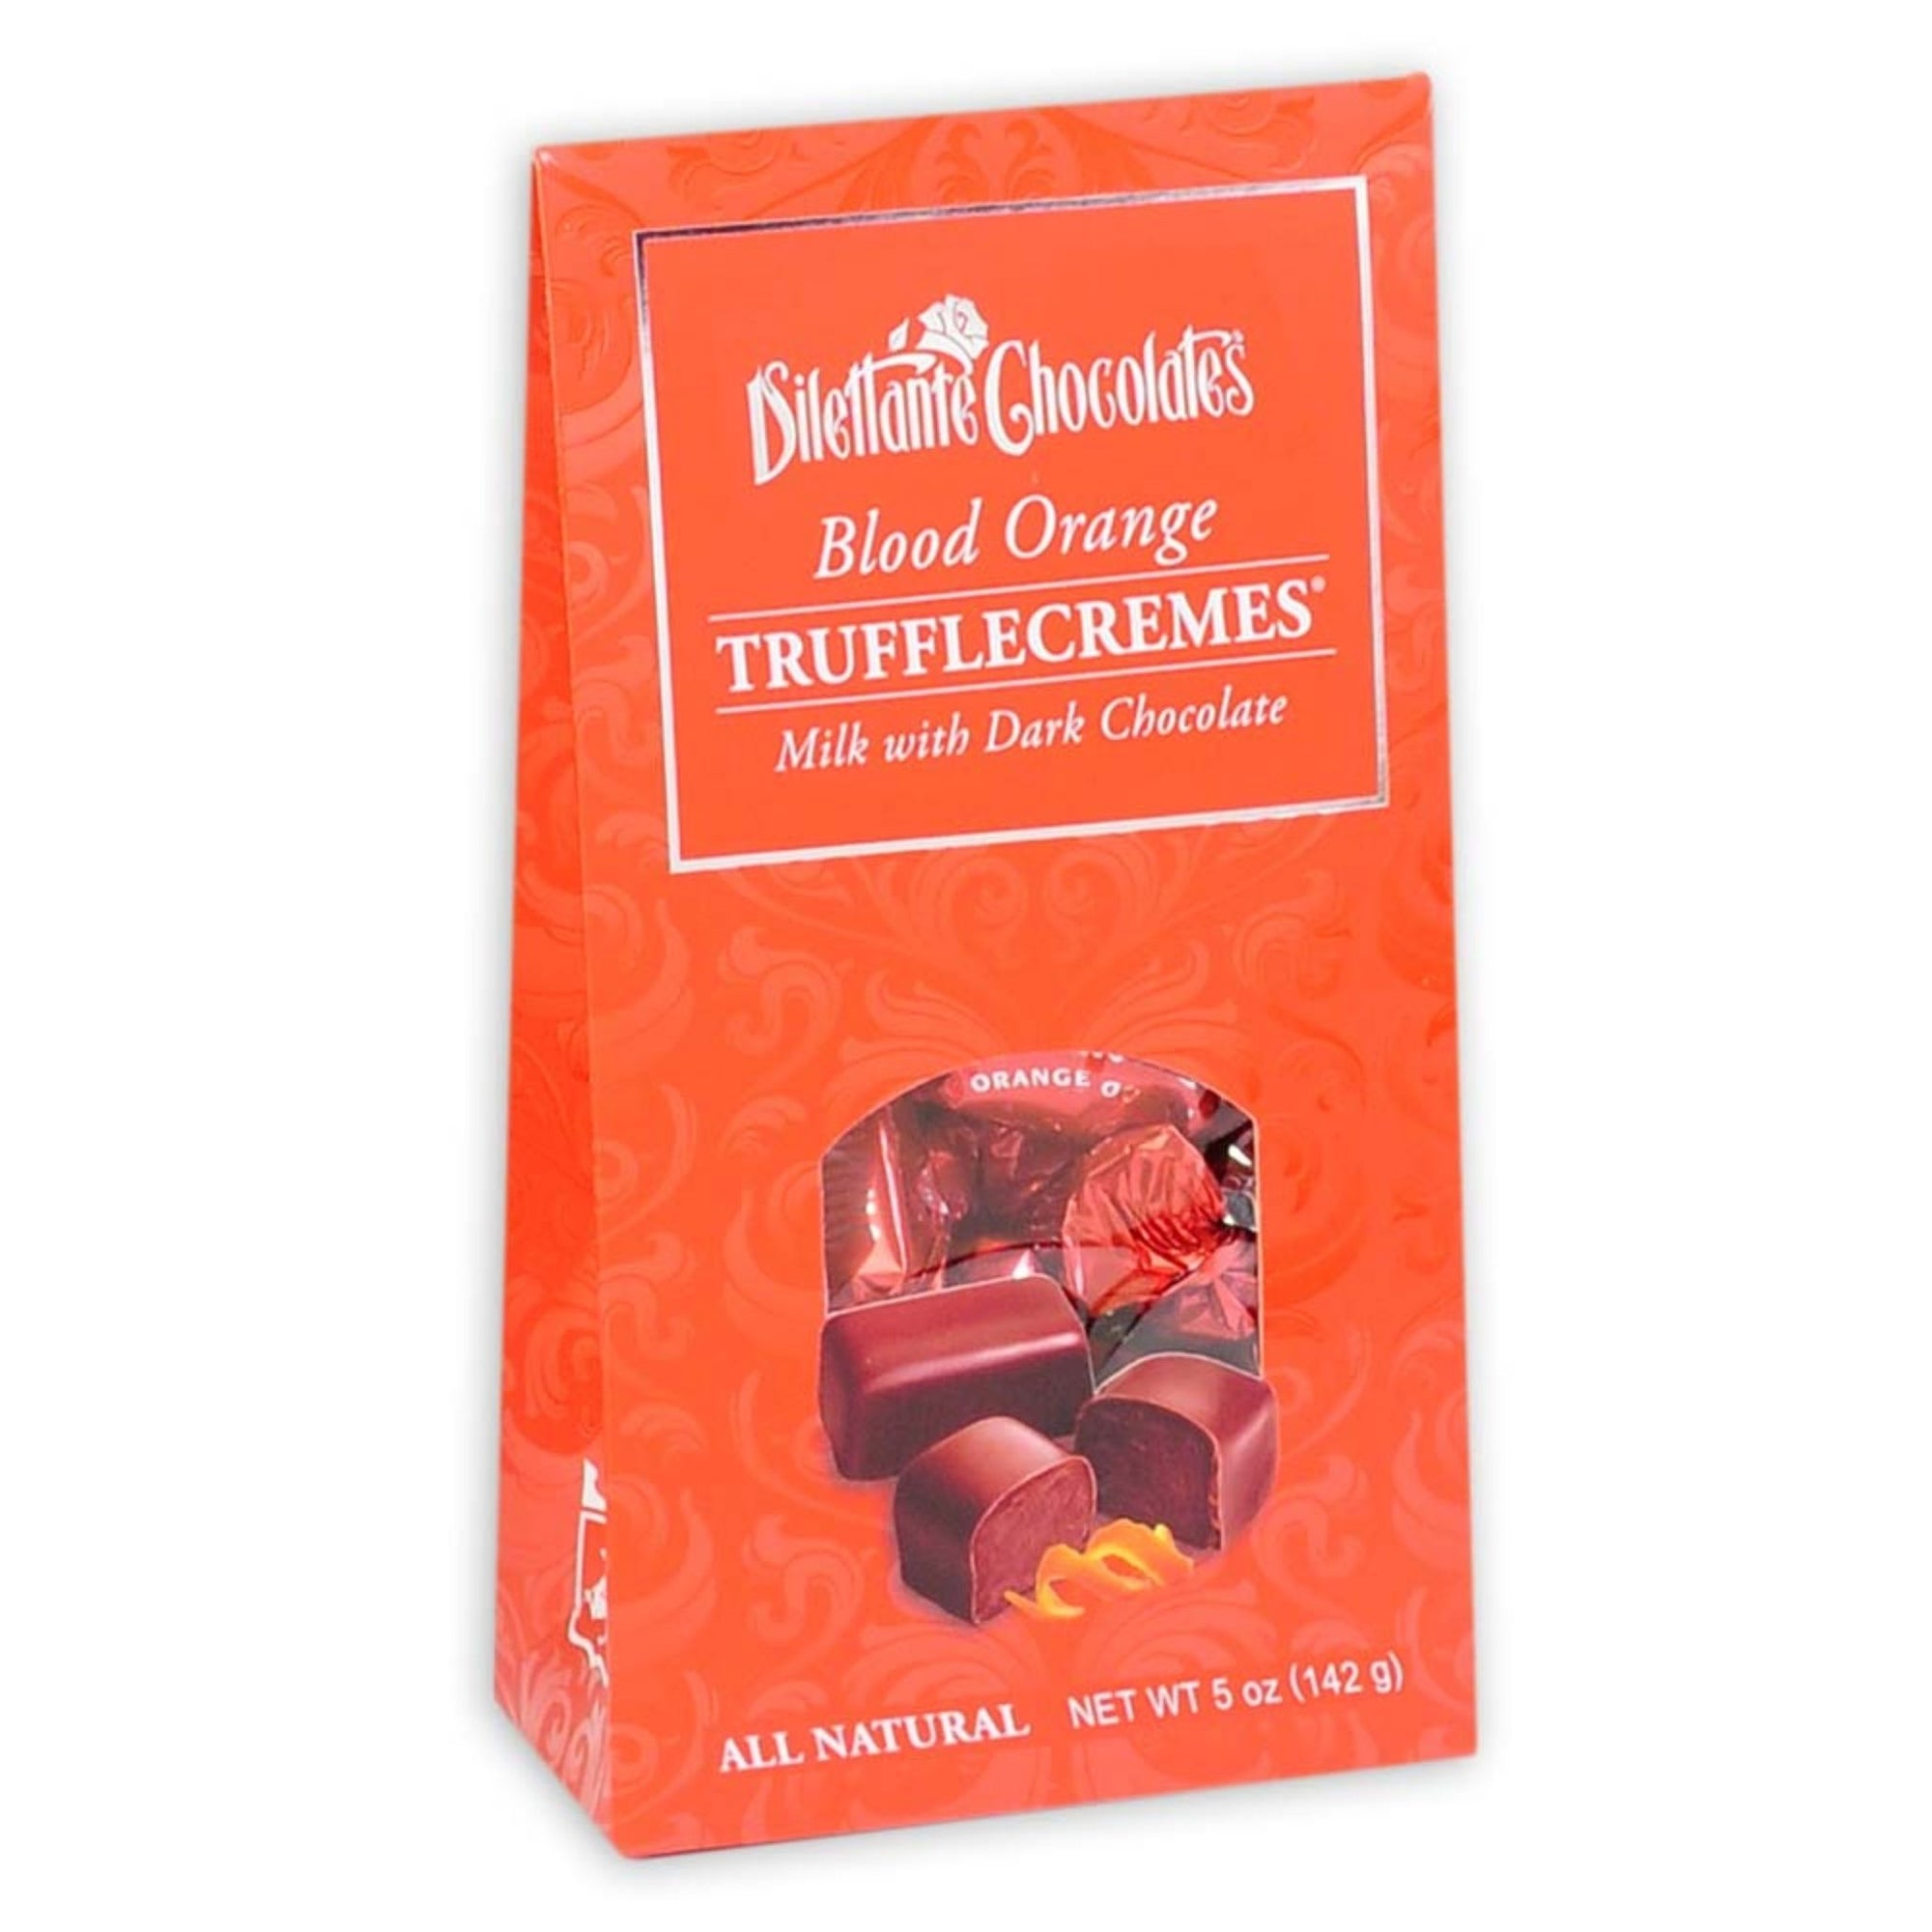 Dilettante Chocolates Blood Orange TruffleCremes Made With Dark Chocolate and All Natural Flavor in a Bright 5-Ounce Tent Box